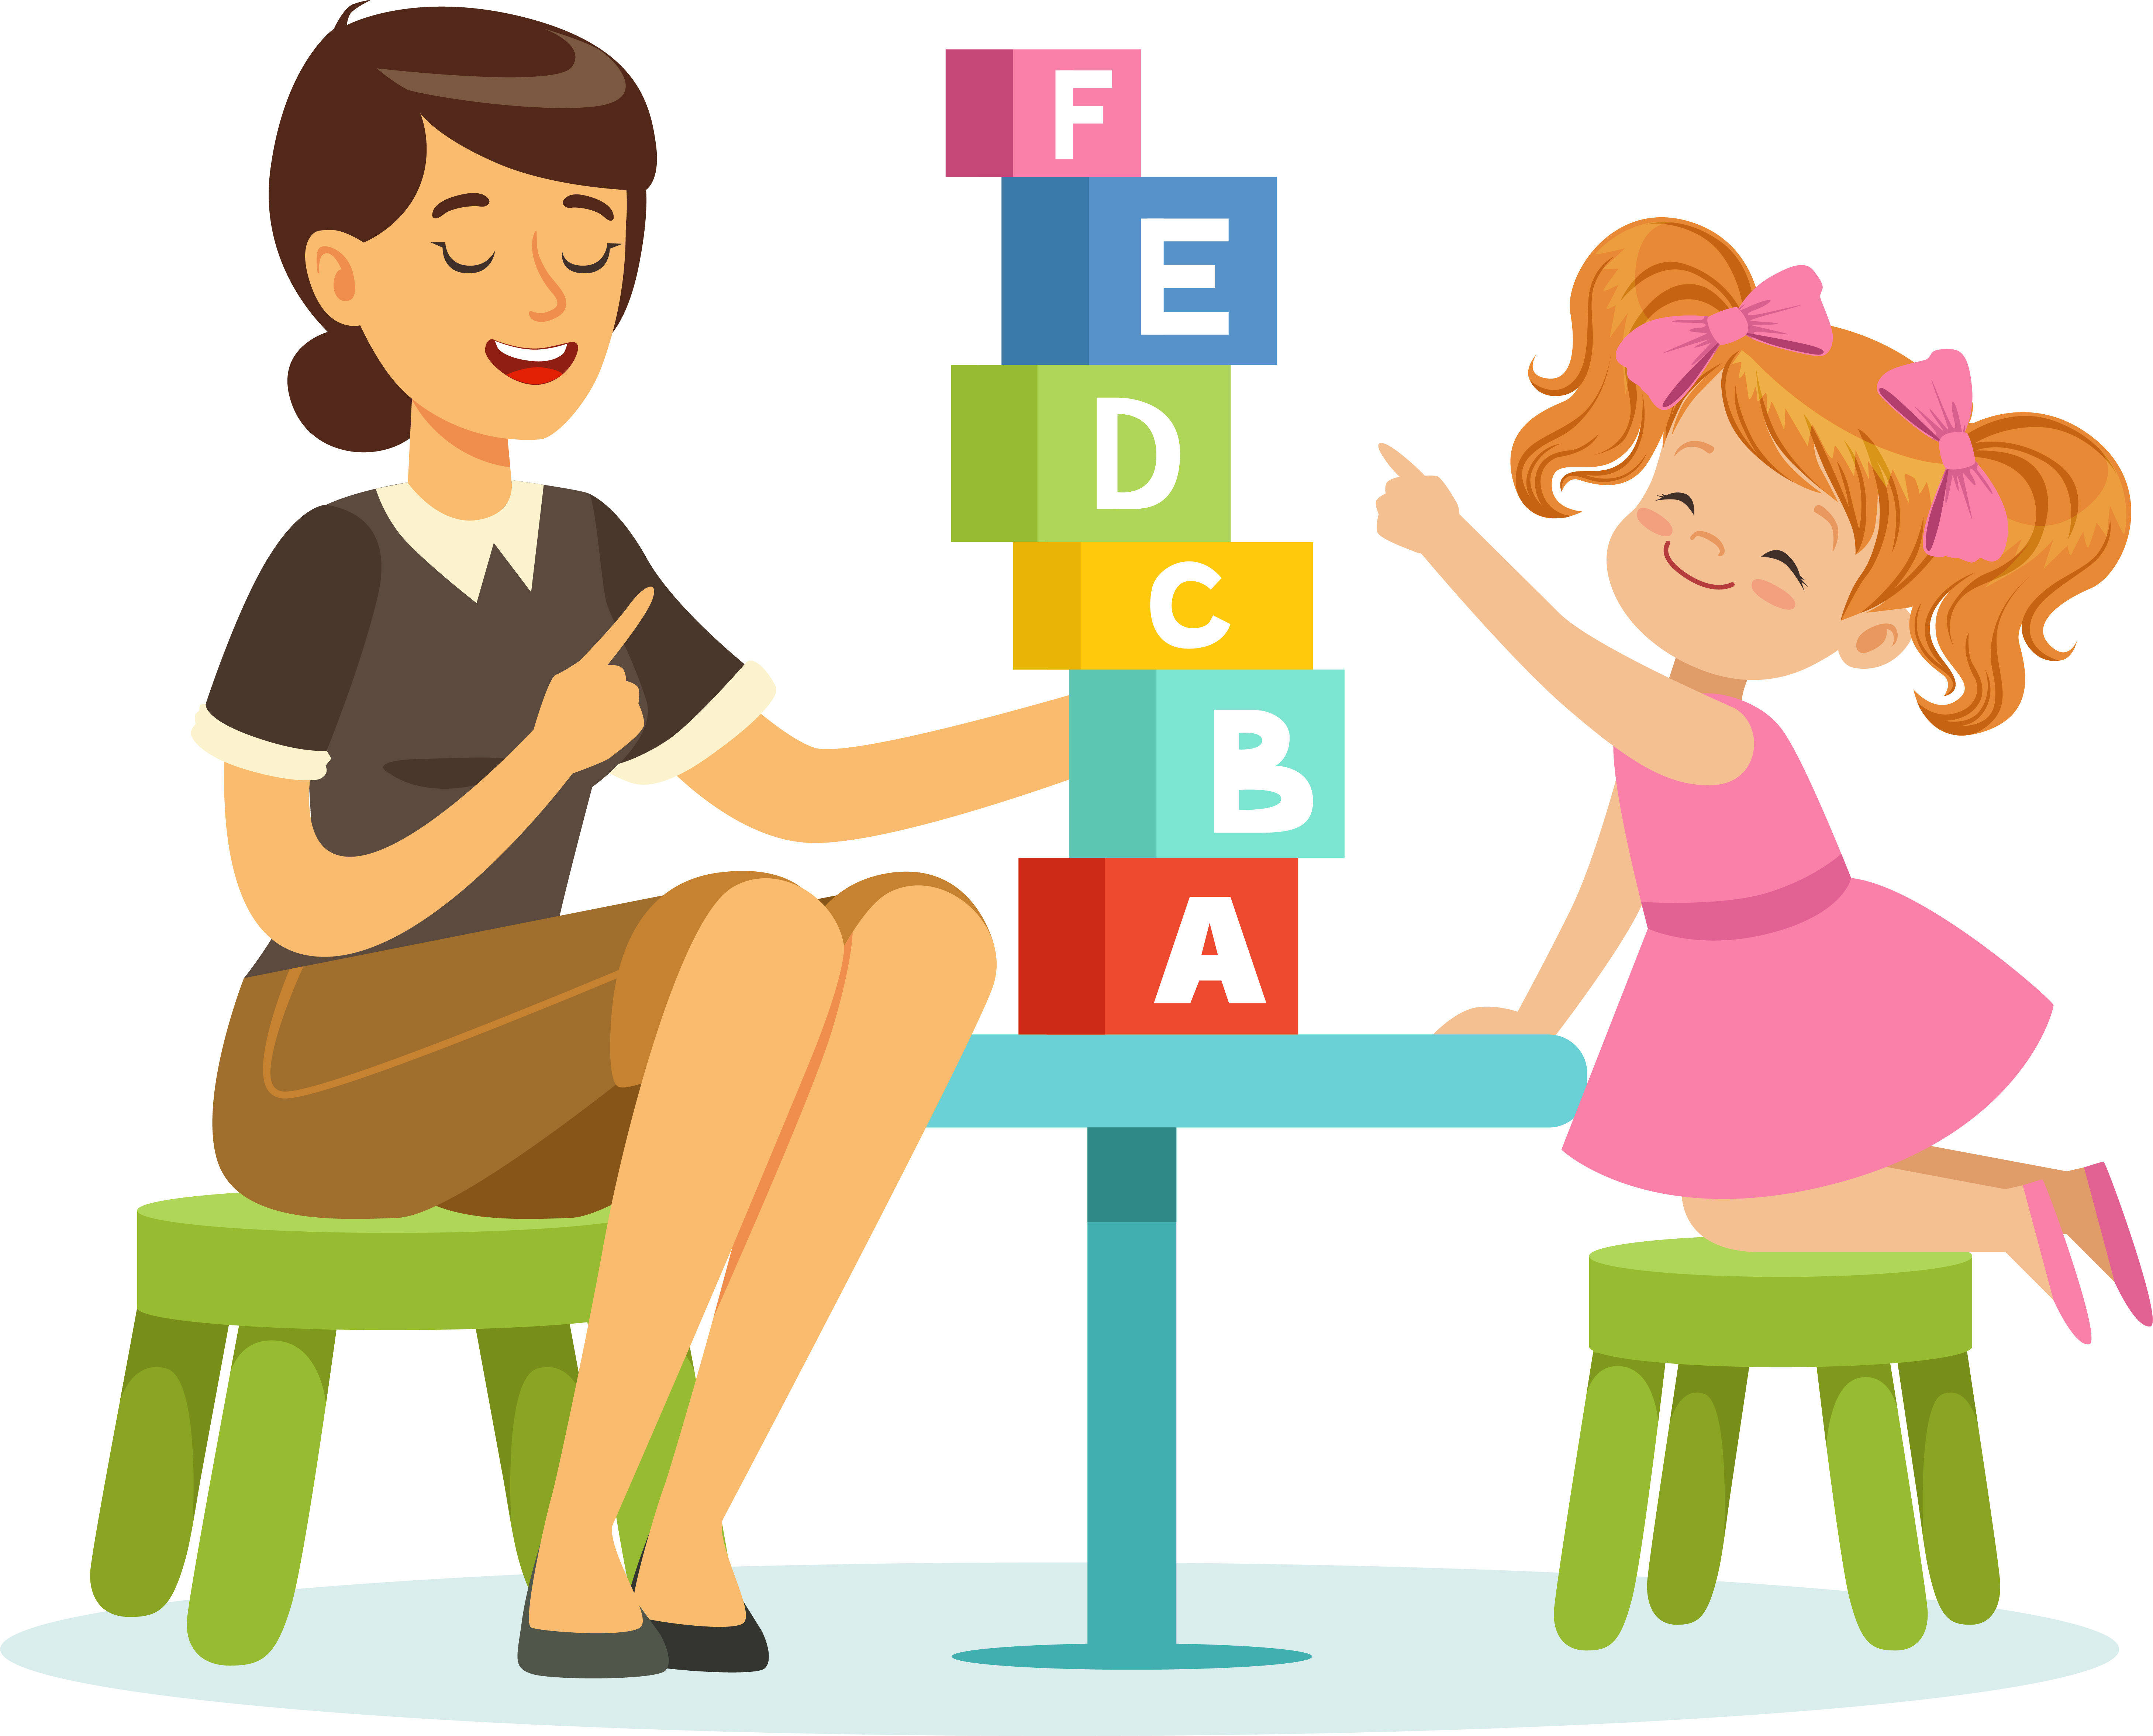 Graphic of woman playing blocks with a child